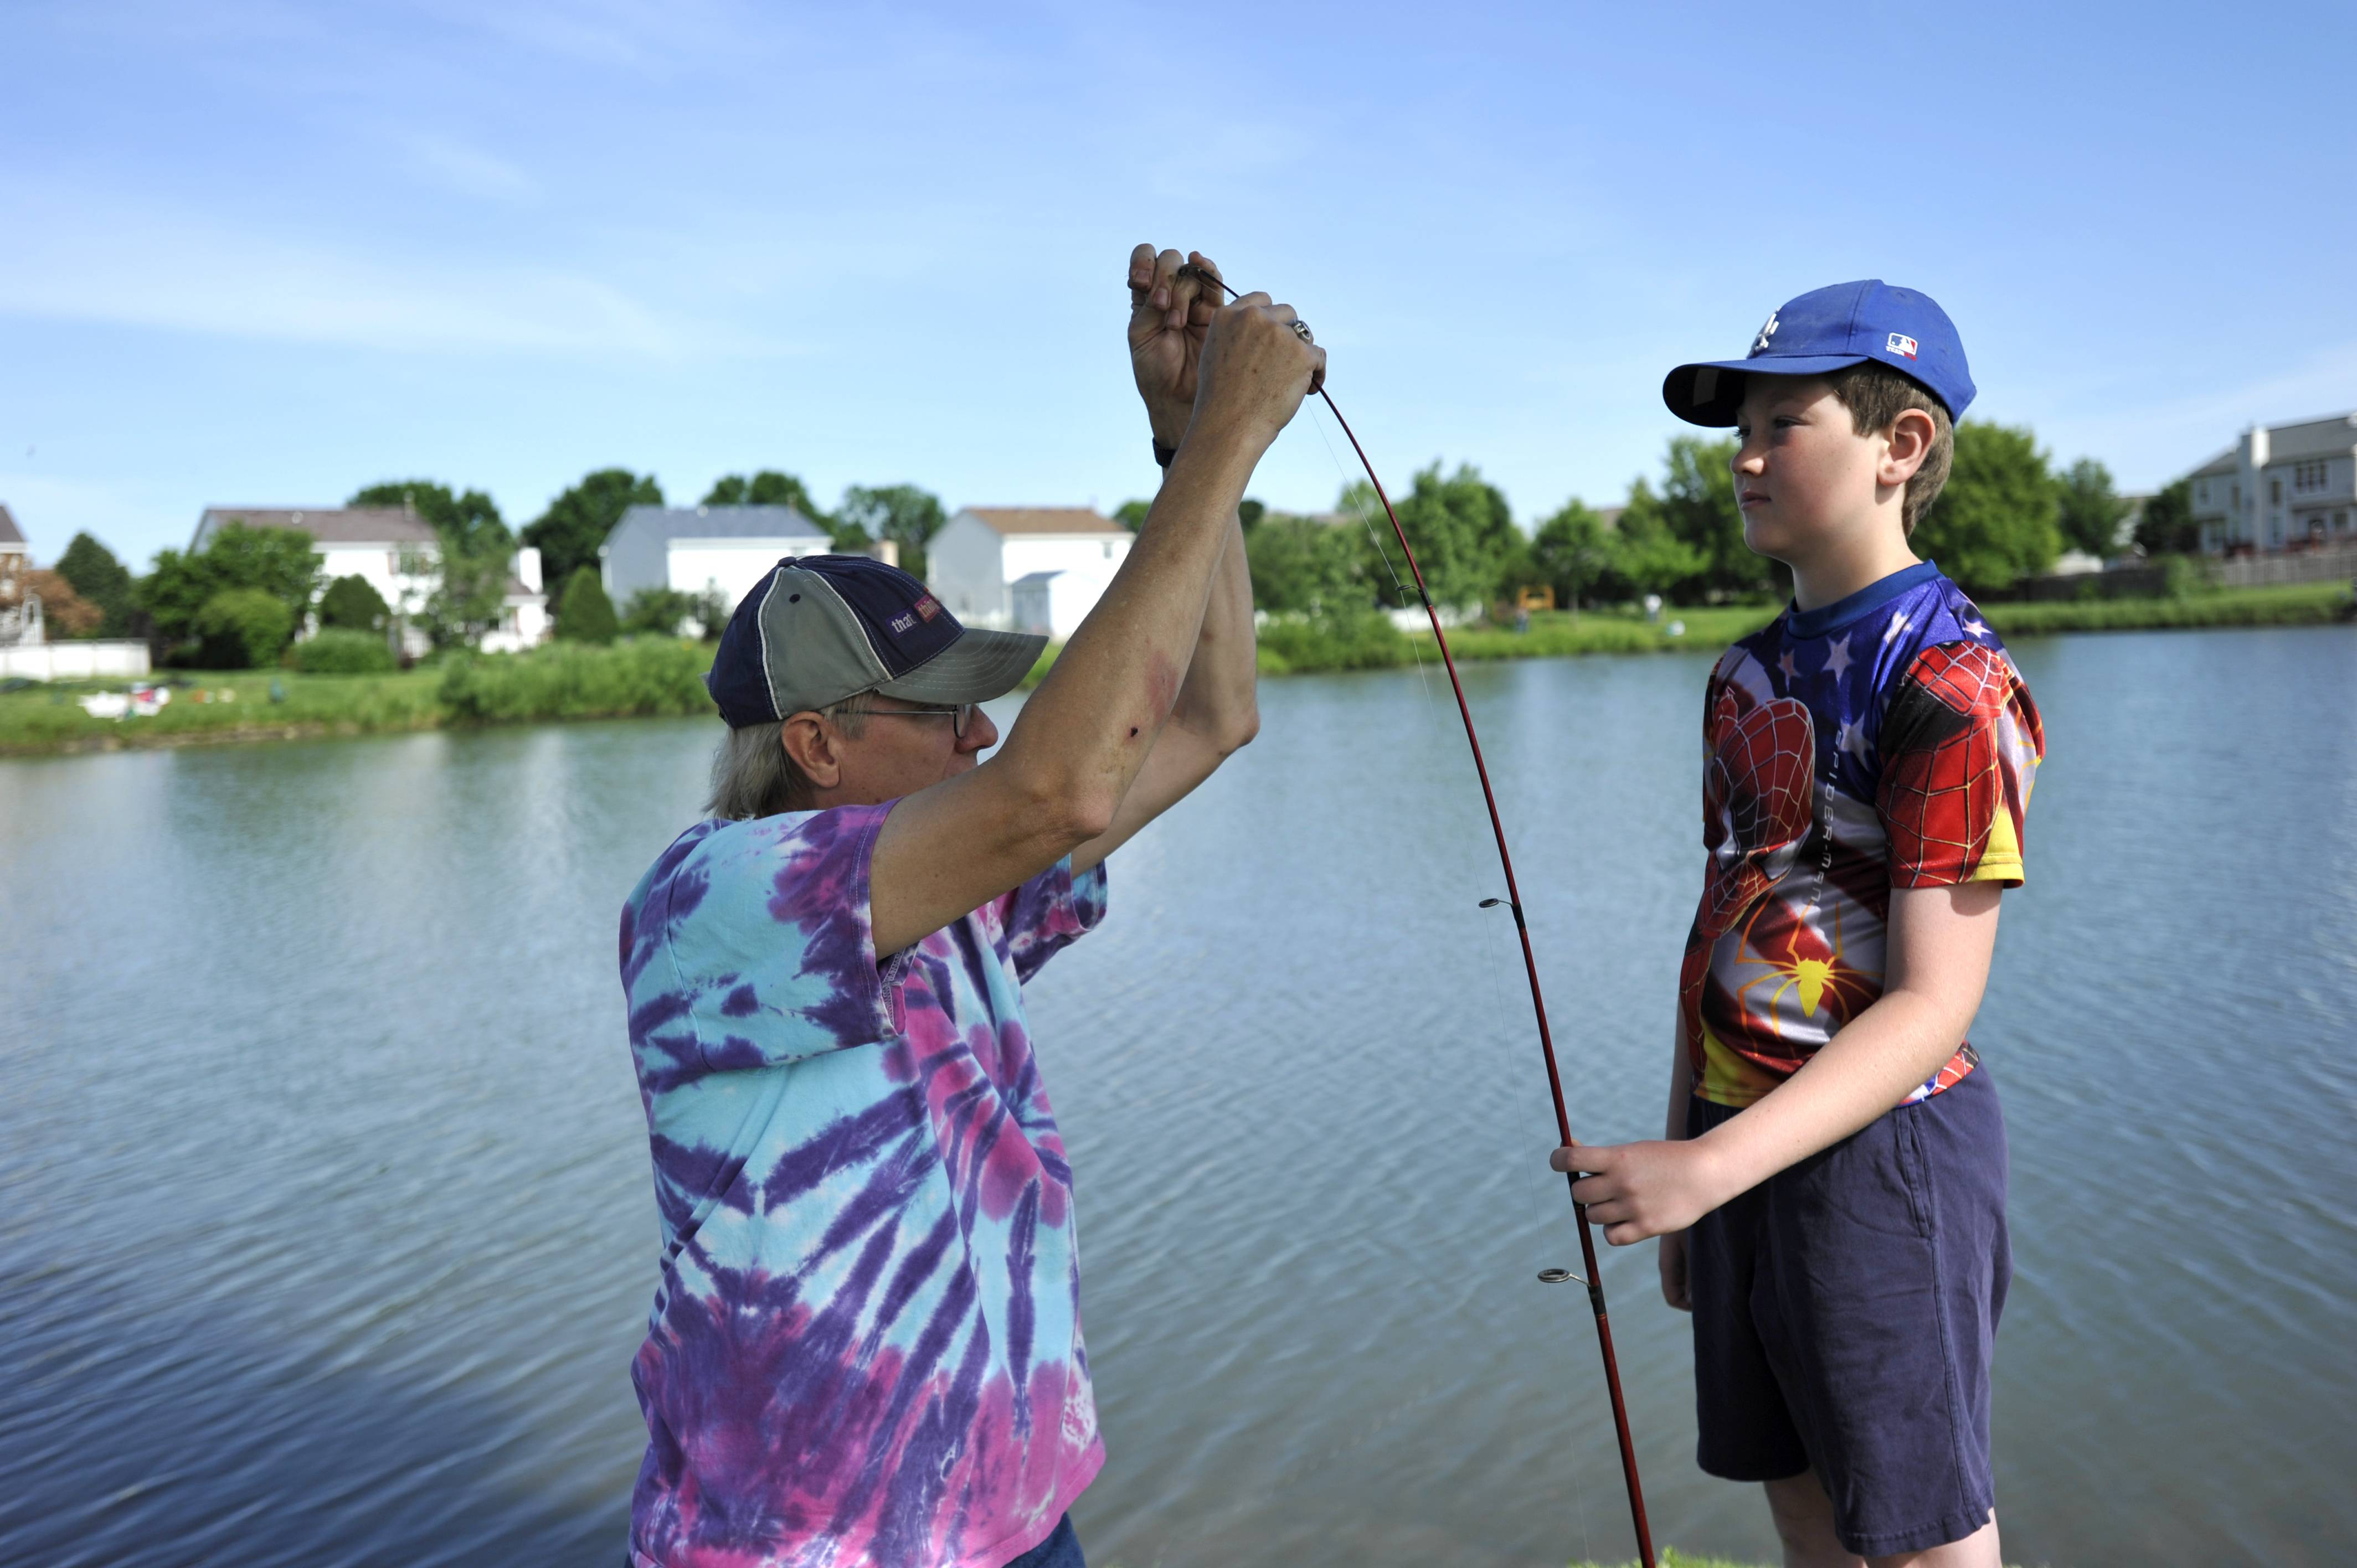 Scott Johnson of South Elgin helps his son Gavin, 9, with his fishing rod at the annual Tuna Kahuna Fishing Derby in Blackhawk Park in South Elgin on Saturday. Johnson's grandfathers were both avid fisherman in San Diego and they enjoy coming to the derby on Father's Day weekend.